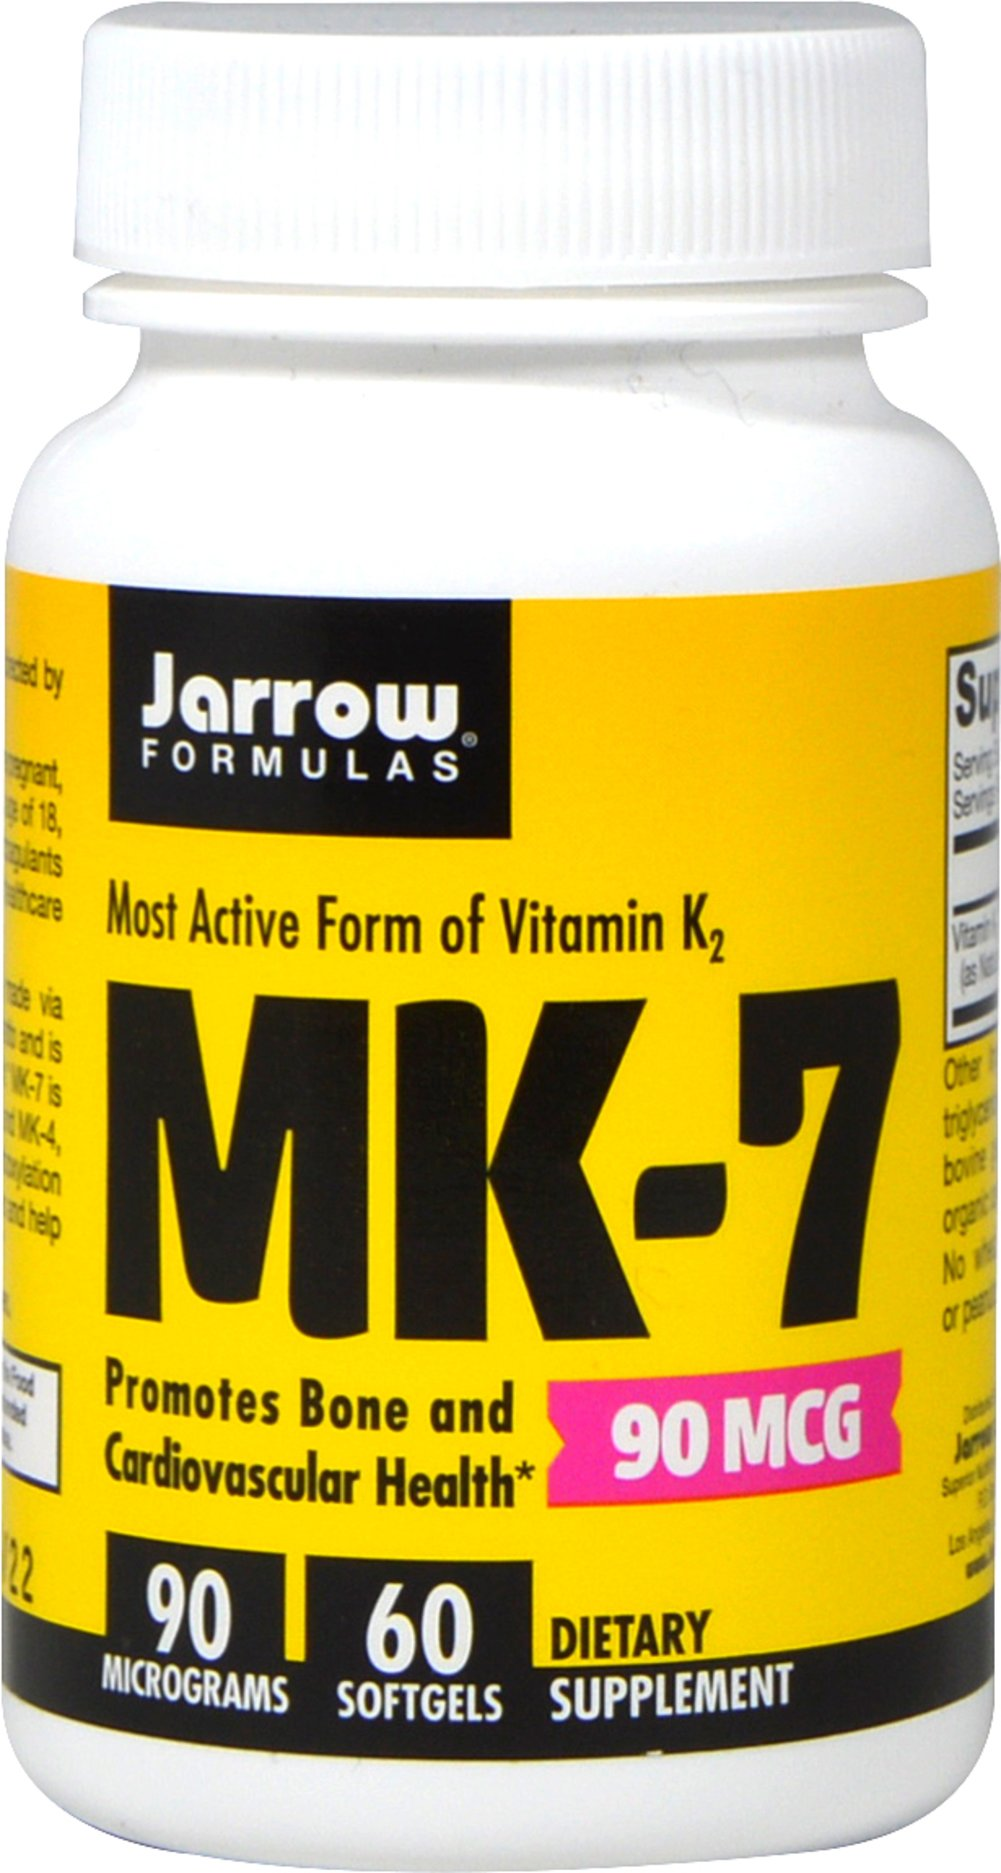 MK-7 Vitamin K2 90 mcg Thumbnail Alternate Bottle View